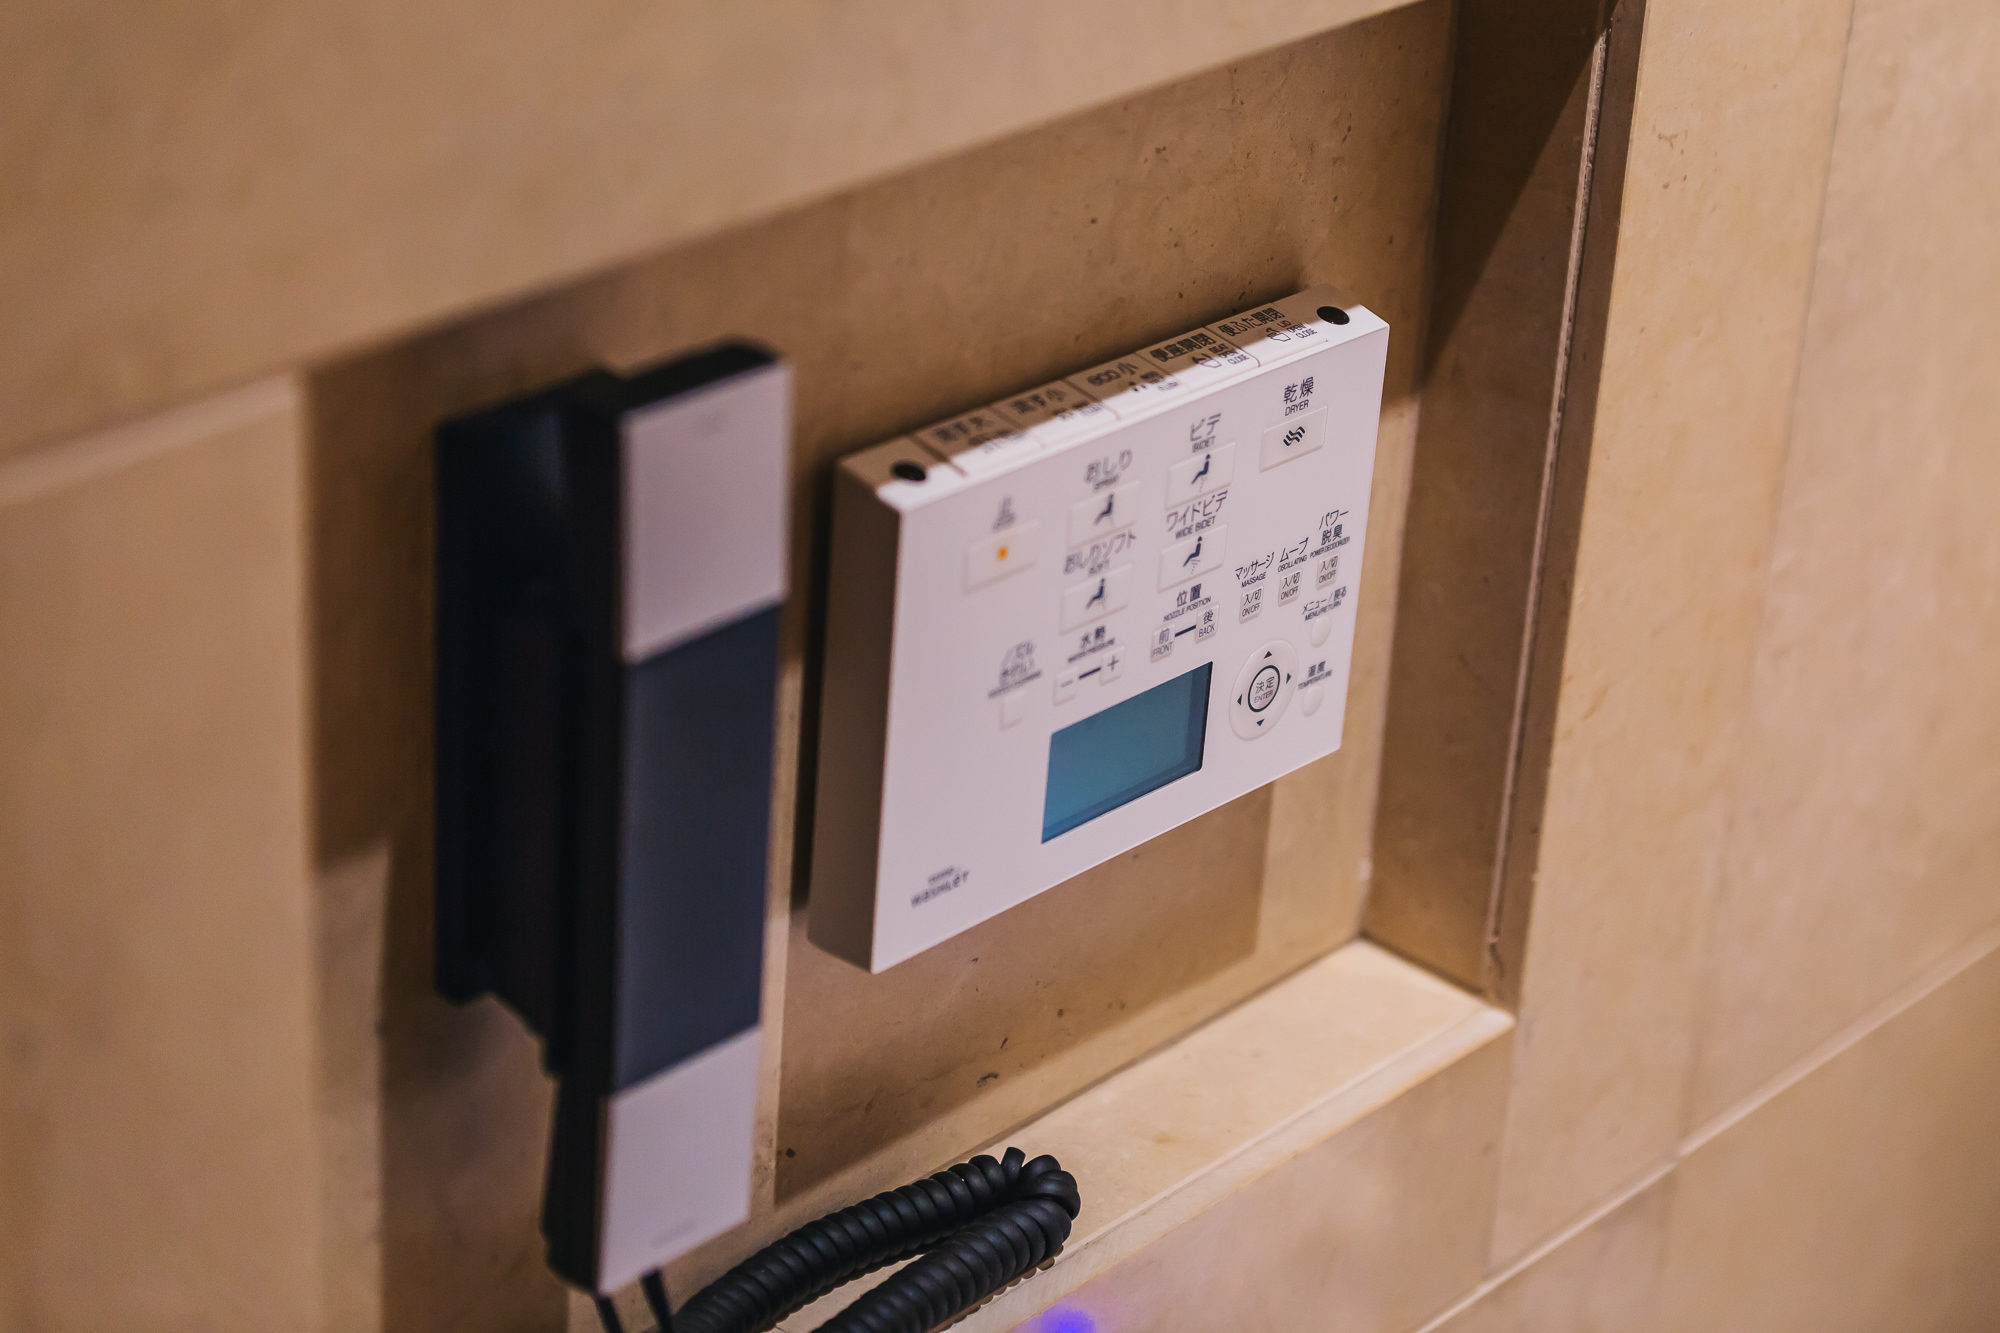 The high-tech toilet buttons. So many options for your toilet needs!